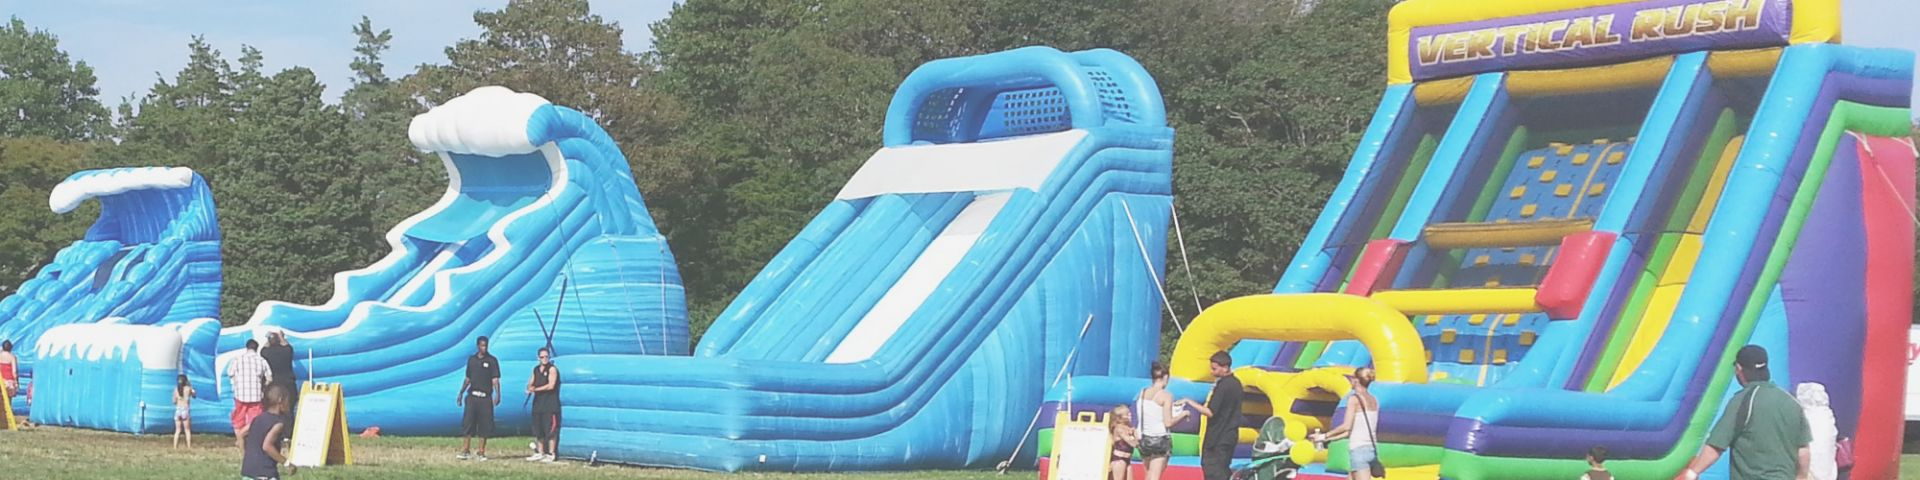 Inflatables and Interactives